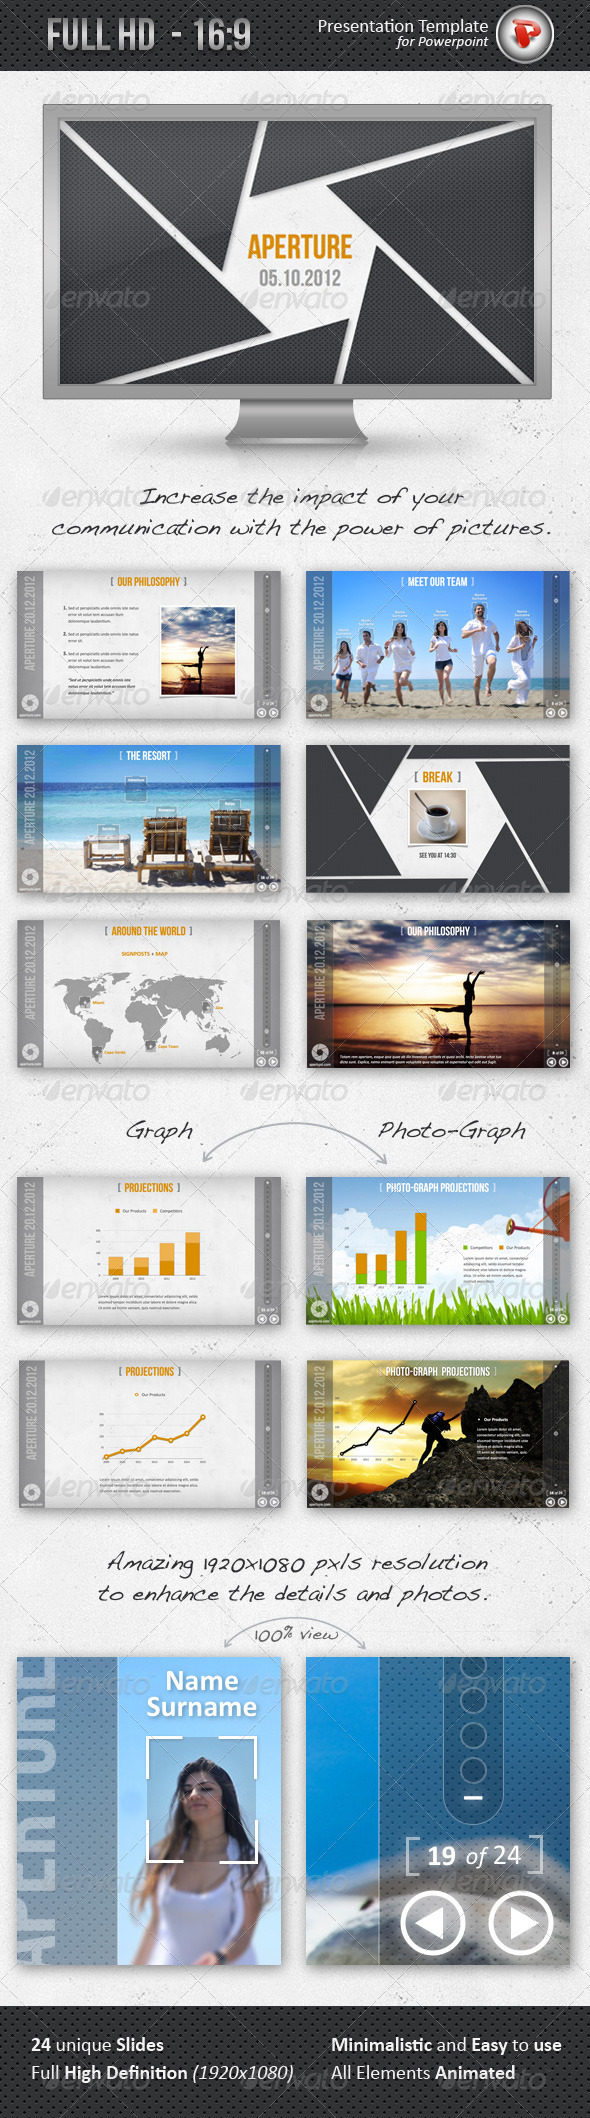 Aperture Powerpoint Template - Business Powerpoint Templates